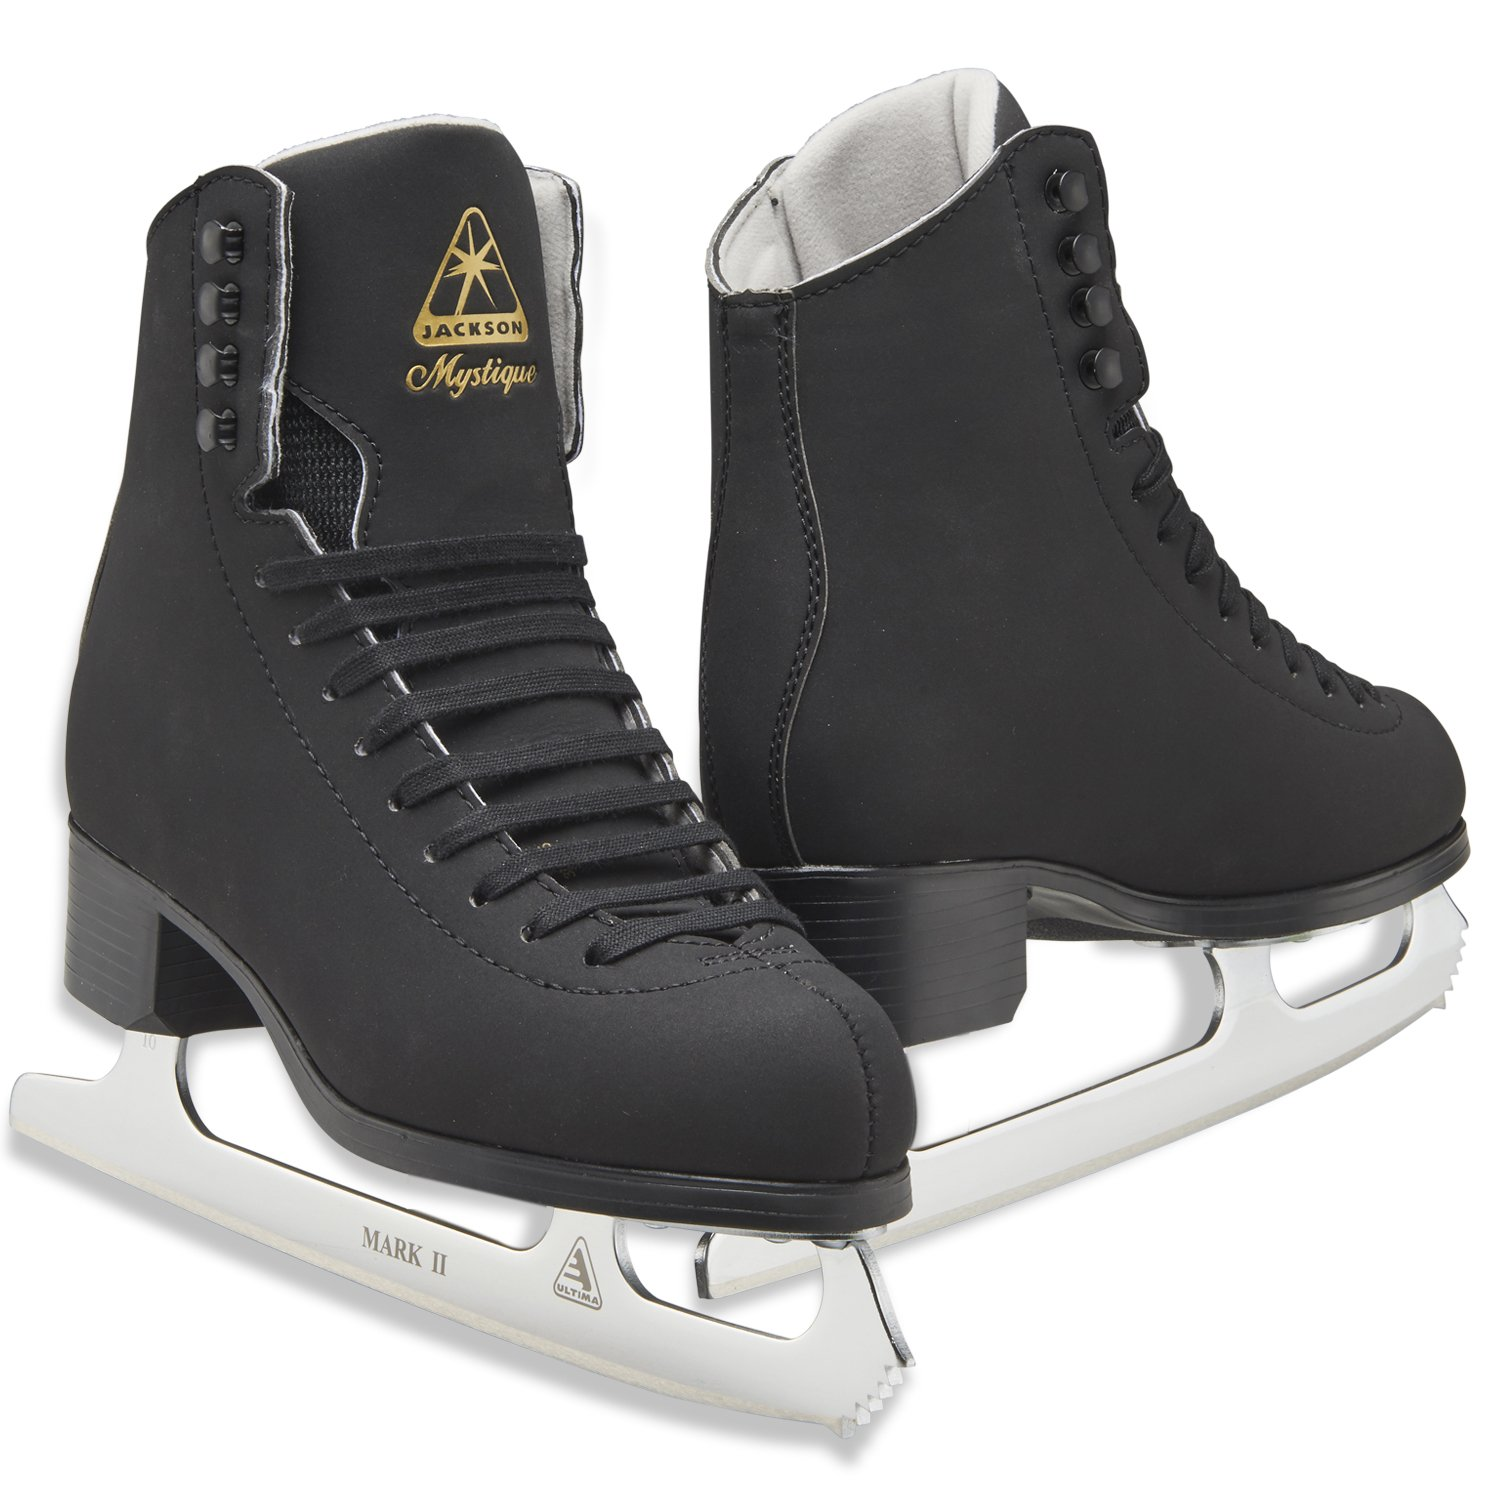 Jackson Ultima Mystique JS1592 / Figure Ice Skates for Men and Boys Width: M/Size: Adult 10